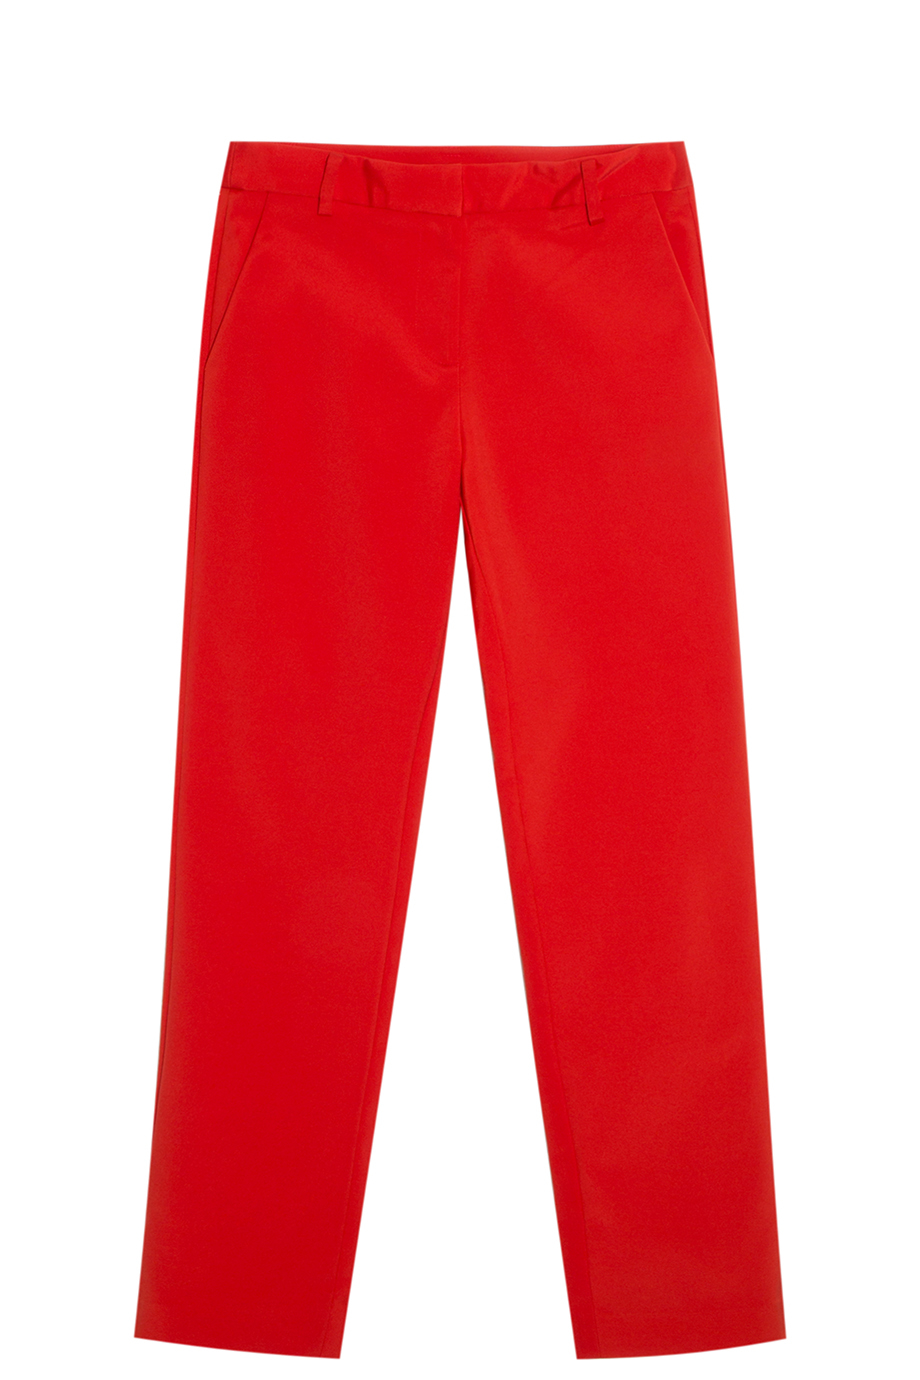 Buy New Capri Pants for Women at Macy's. Shop the Latest Capris Online at dnxvvyut.ml FREE SHIPPING AVAILABLE!